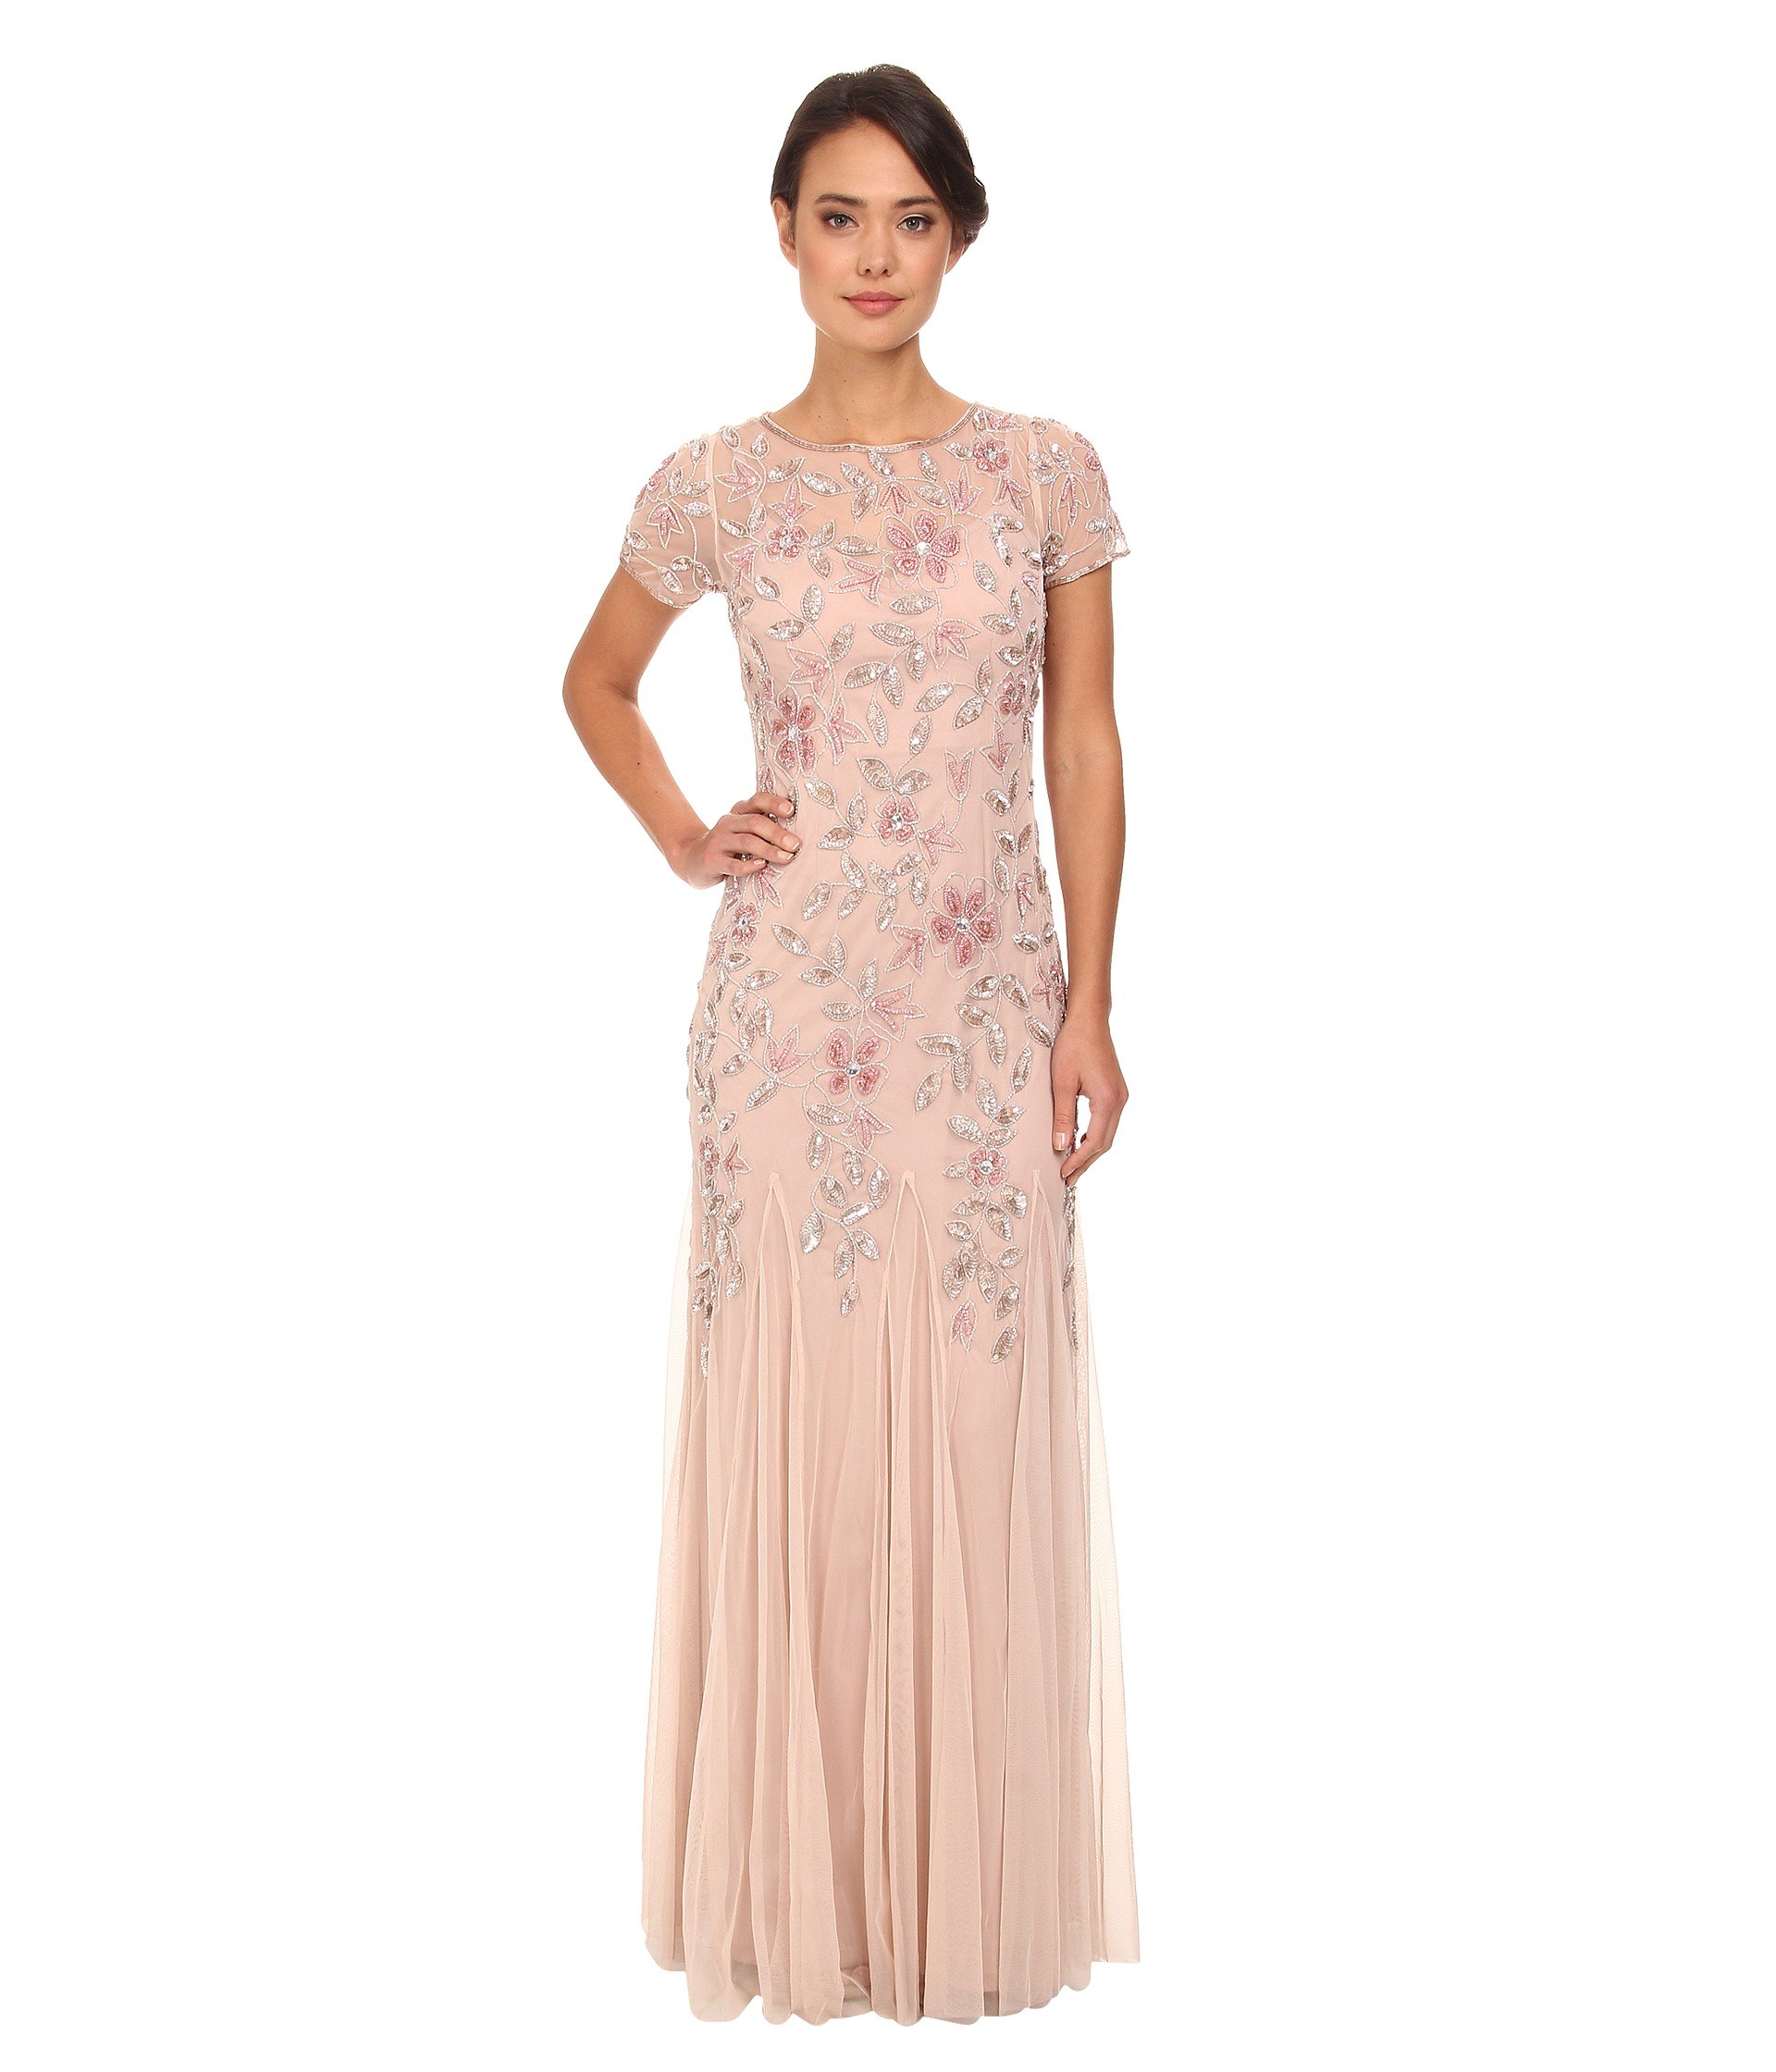 Adrianna Papell Women\'s Floral Beaded Godet Gown | eBay